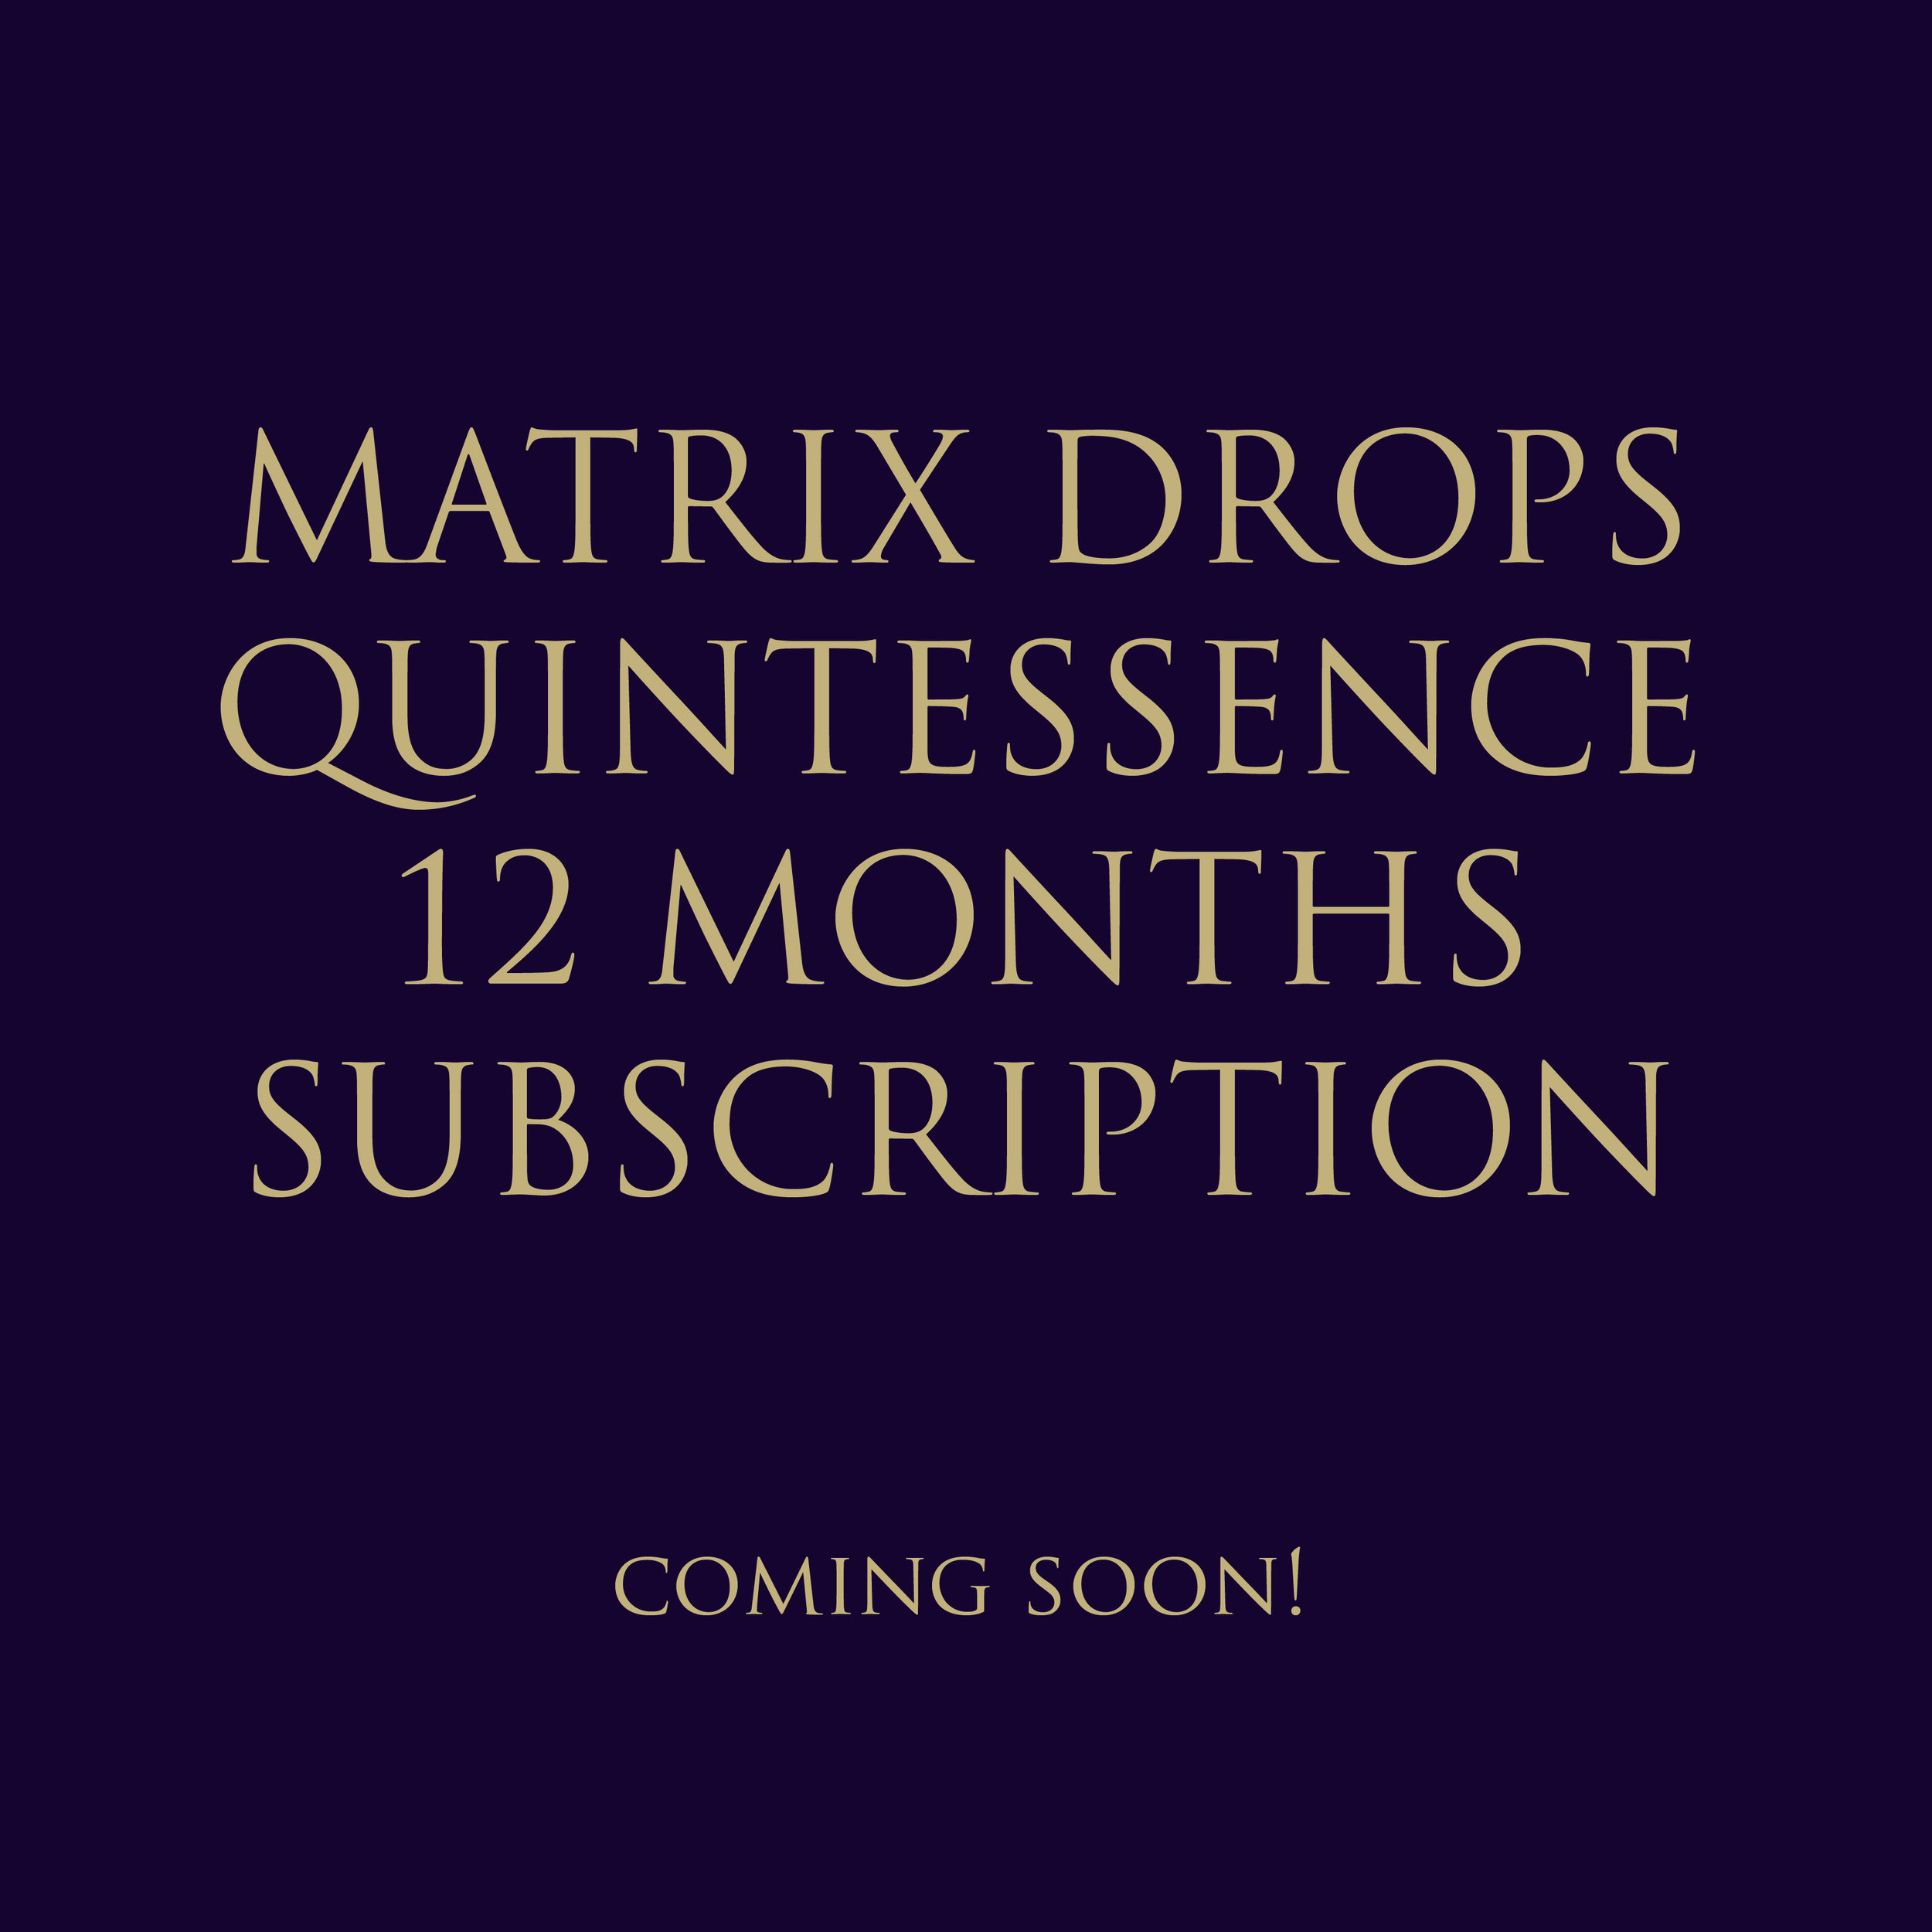 MD QUINTESSENCE 12 MONTHS SUBSCRIPTION